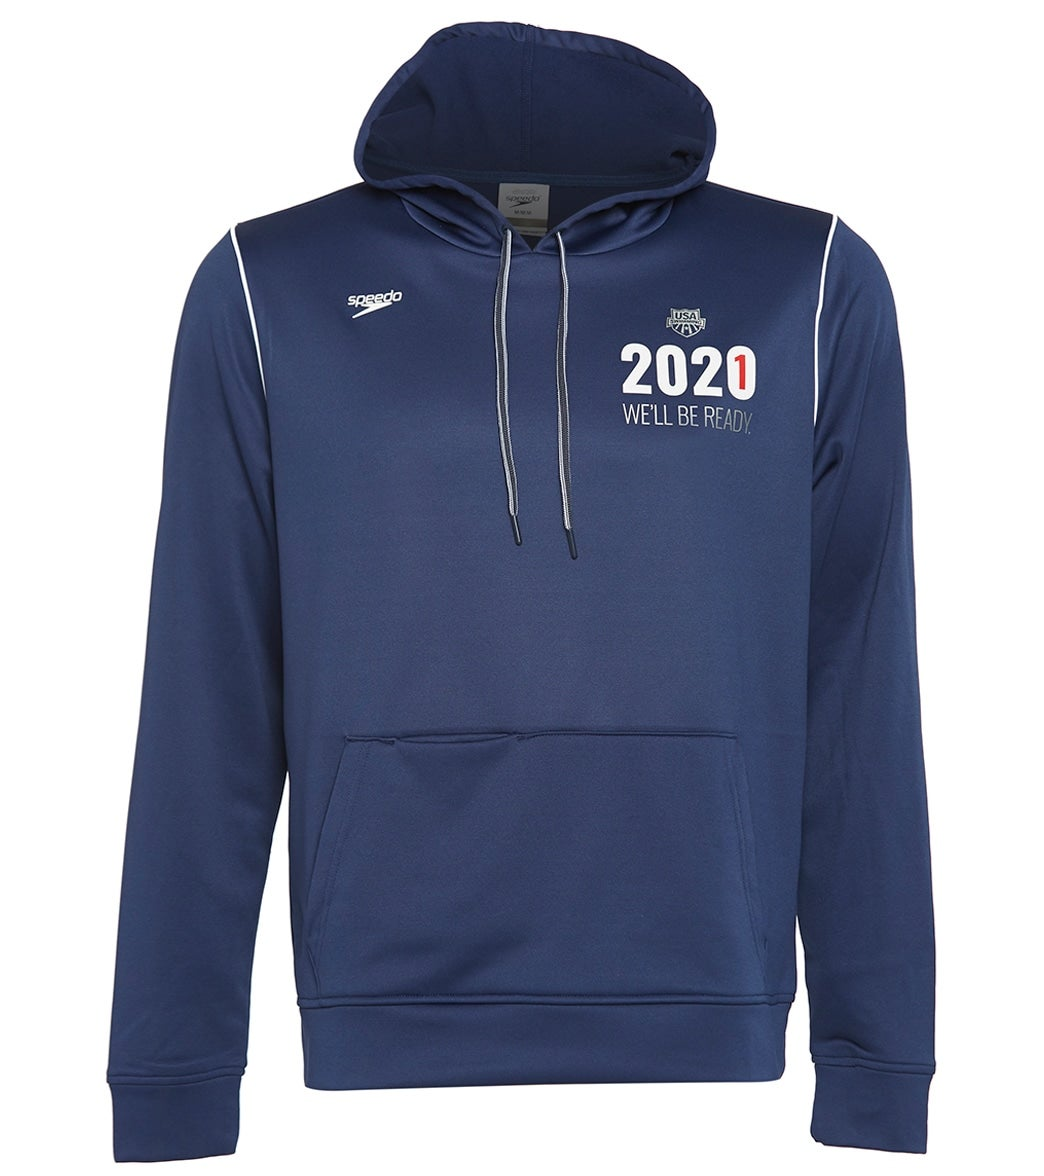 The Speedo USA Swimming Unisex 2021 We'll Be Ready Zip Pullover Sweatshirt is part of USA Swimming's Special Collection: '2021 We ll be Ready'. All proceeds from the sale of this product will go to support U.S. National Team athletes in their continued preparation for the Olympic Games in Tokyo in 2021. Your support is incredibly appreciated.|https://www.swimoutlet.com/p/speedo-usa-swimming-unisex-2021-well-be-ready-pull-over-hoodie-sweatshirt-8197133/?color=10890|0|stt9